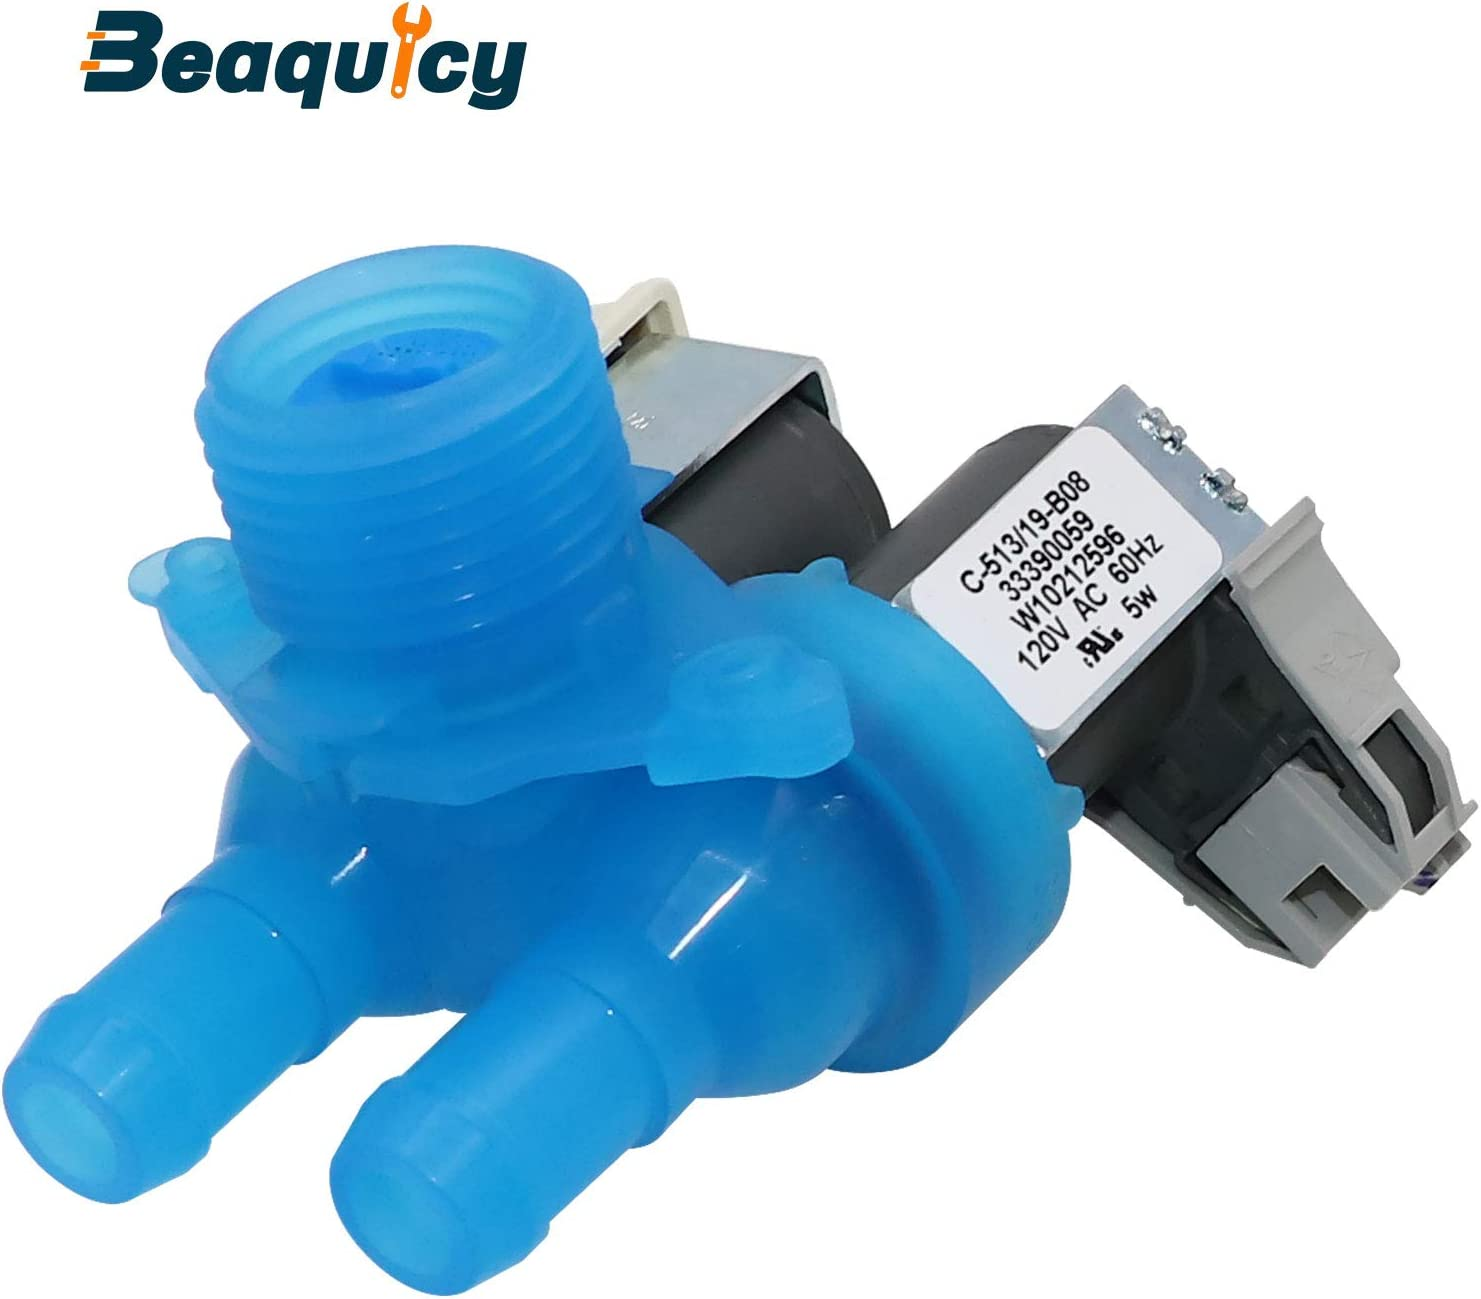 W10212596 Cold Water Inlet Valve for Washing Machine by Beaquicy - Replacement for Whirlpool Maytag Amana Inglis Washers - Water Inlet Valve for the Cold Water